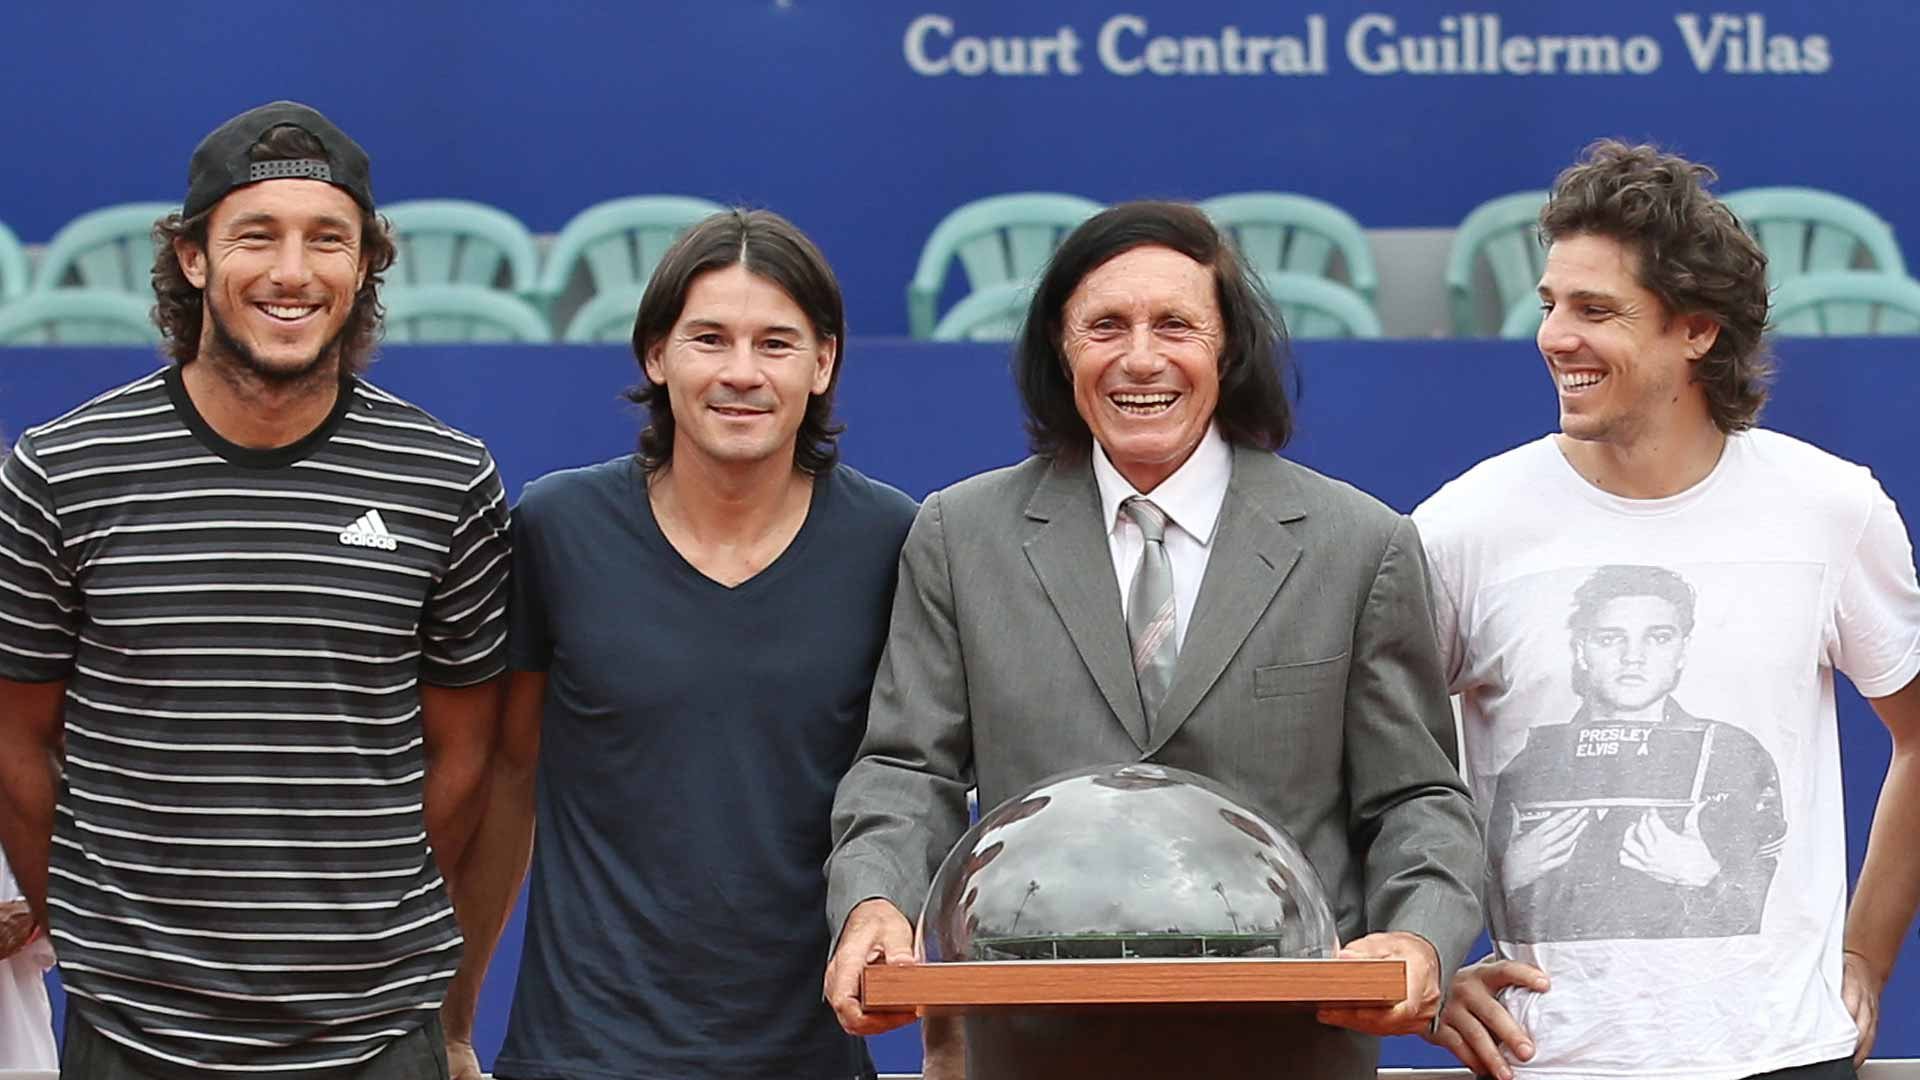 Guillermo Vilas Overview ATP World Tour